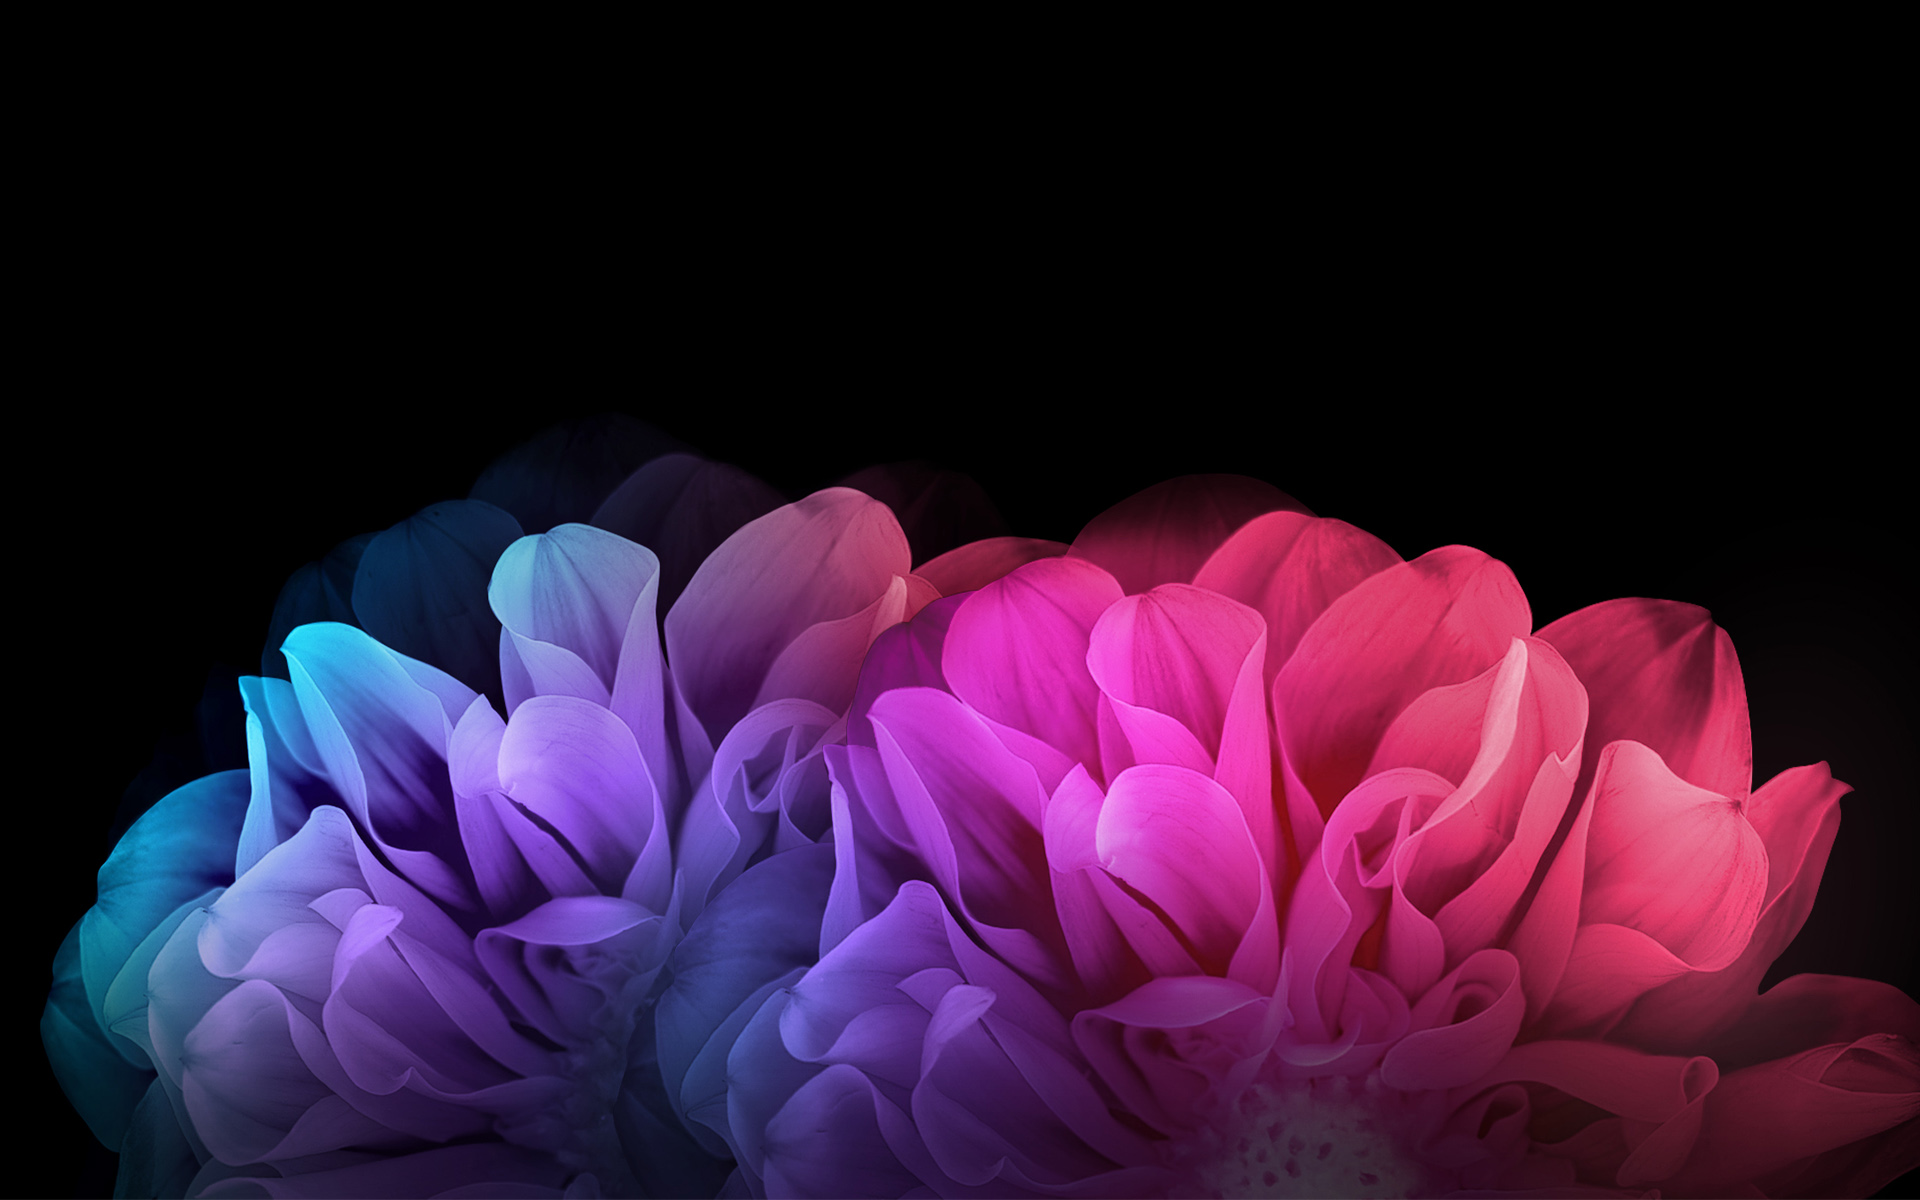 Wallpaper 4k Colorful Flowers Dark Background Background Colorful